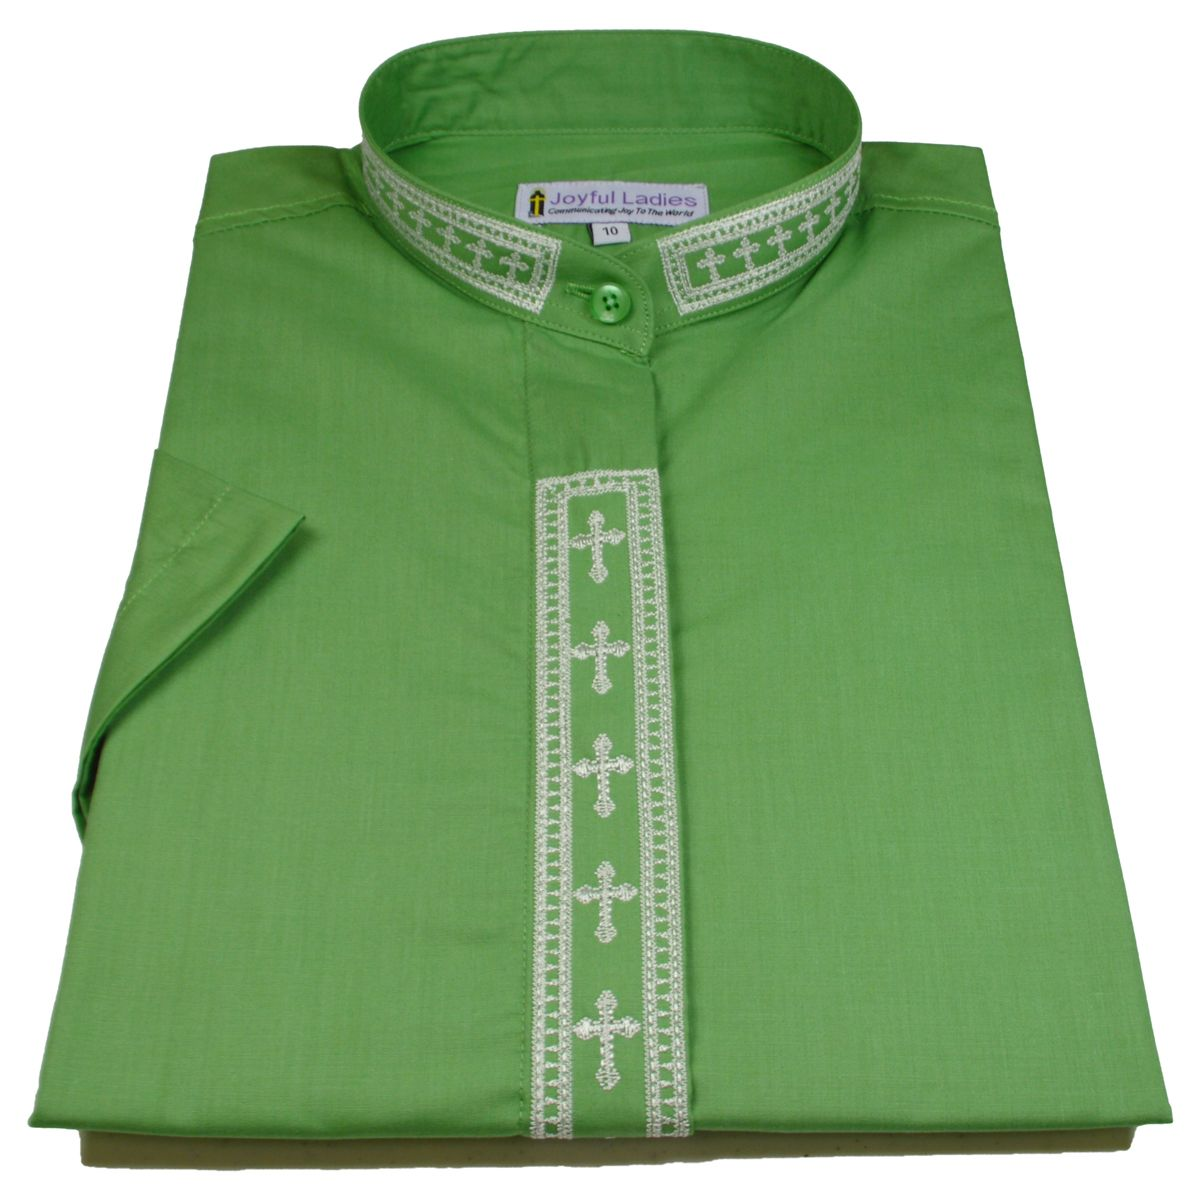 765. Women's Short-Sleeve Clergy Shirt With Fine Embroidery - Green/Creme